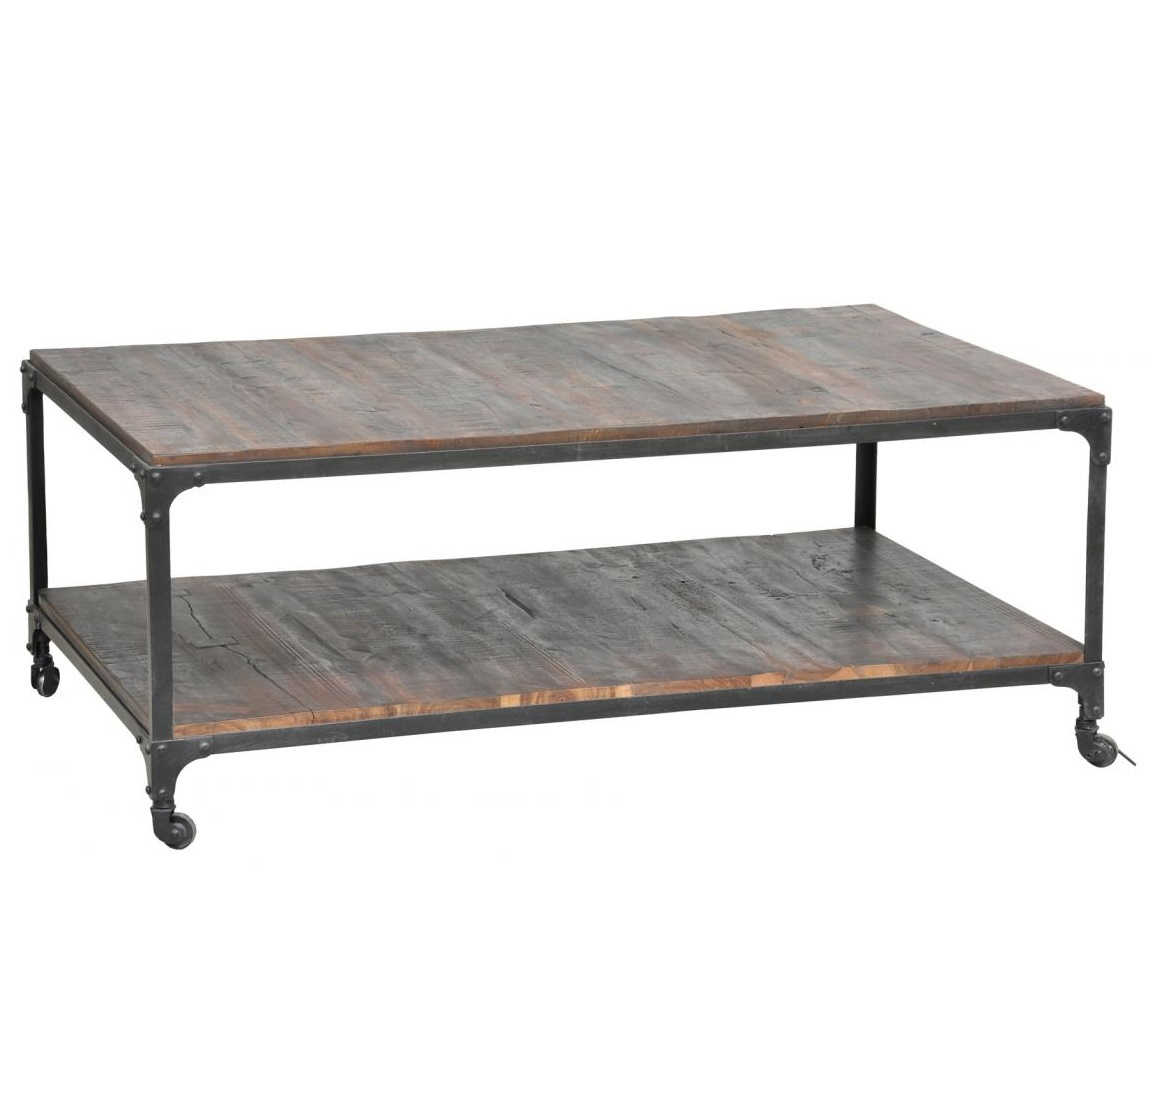 glass top wrought iron coffee table small outdoor side modern patio and cocktail accent tables industrial lamp white sofa entryway wood end currey company drop leaf black metal